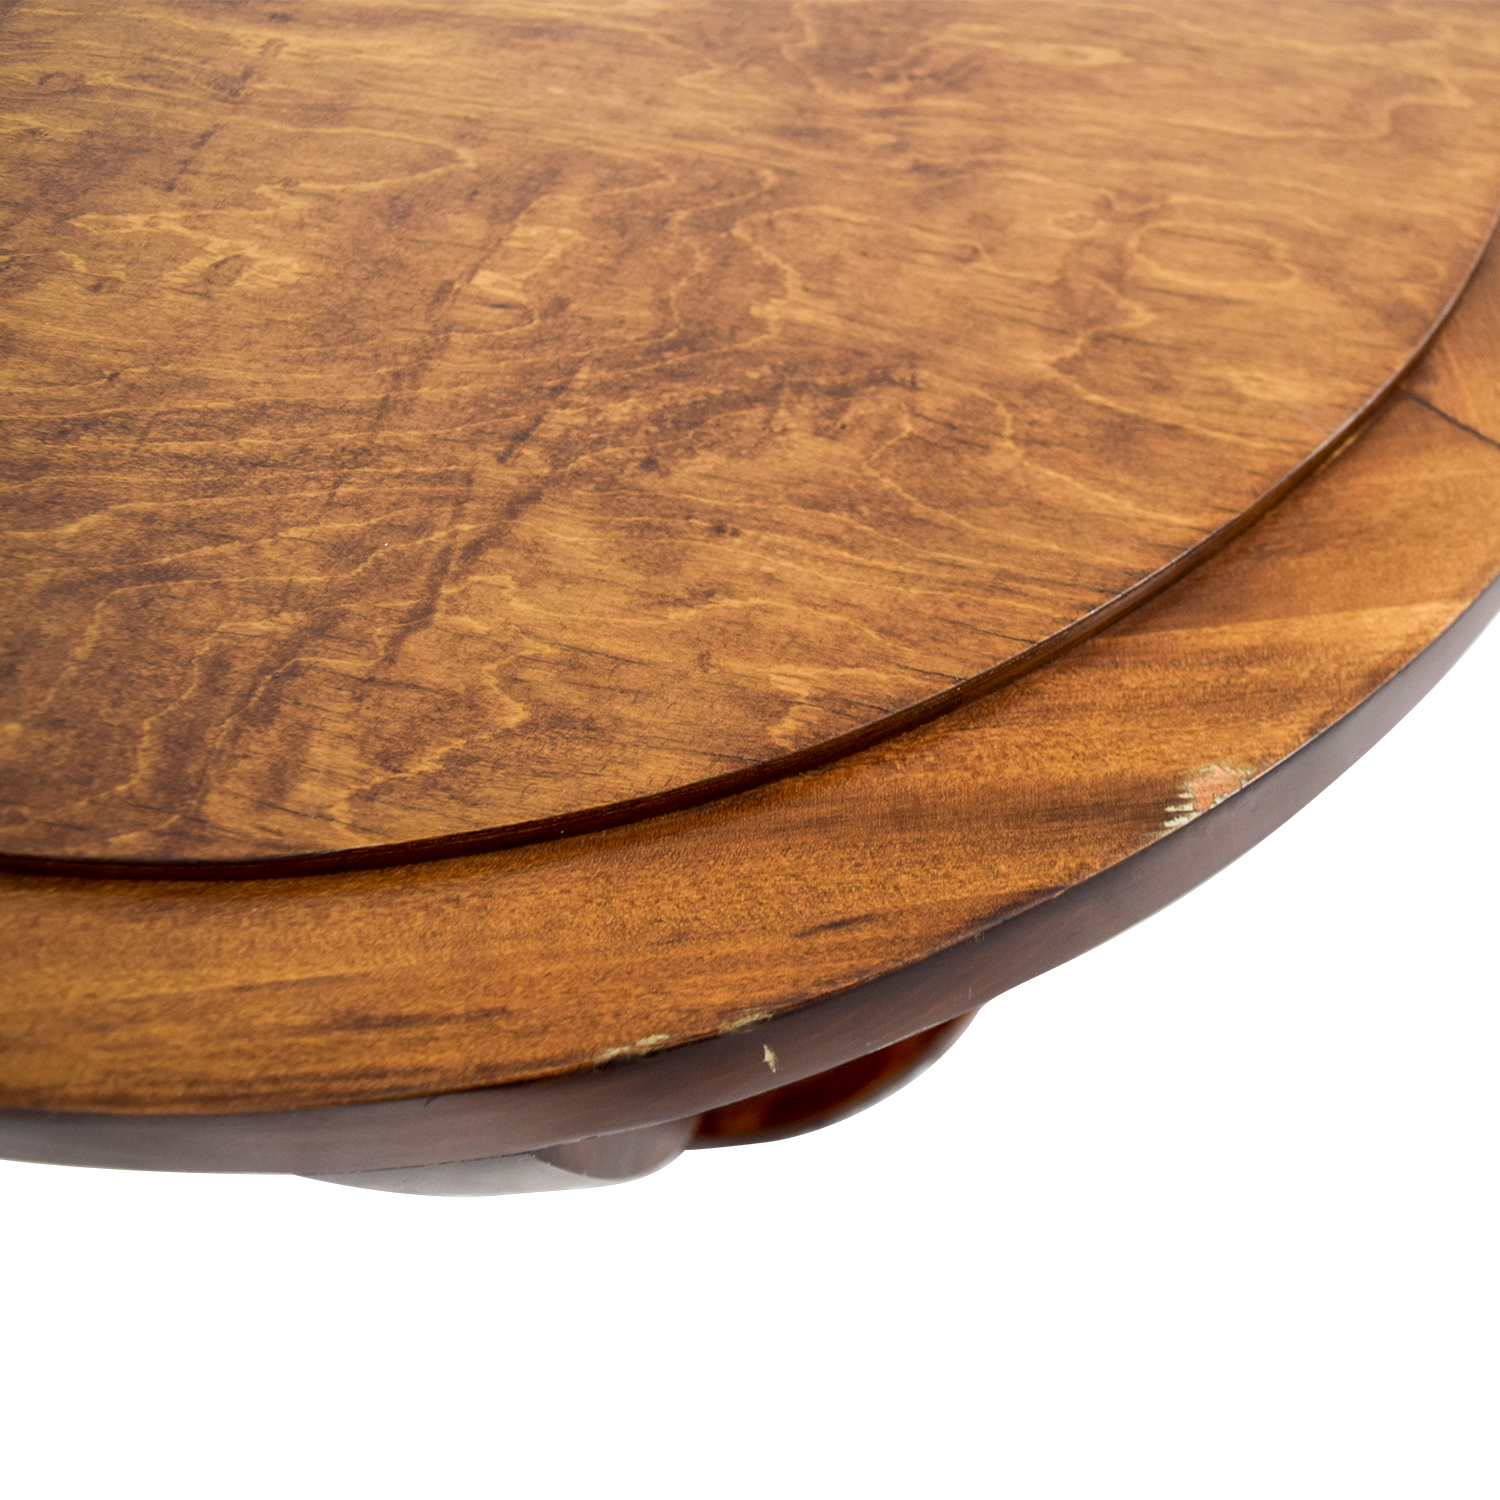 Furniture Masters Furniture Masters Round Wood End Table for sale